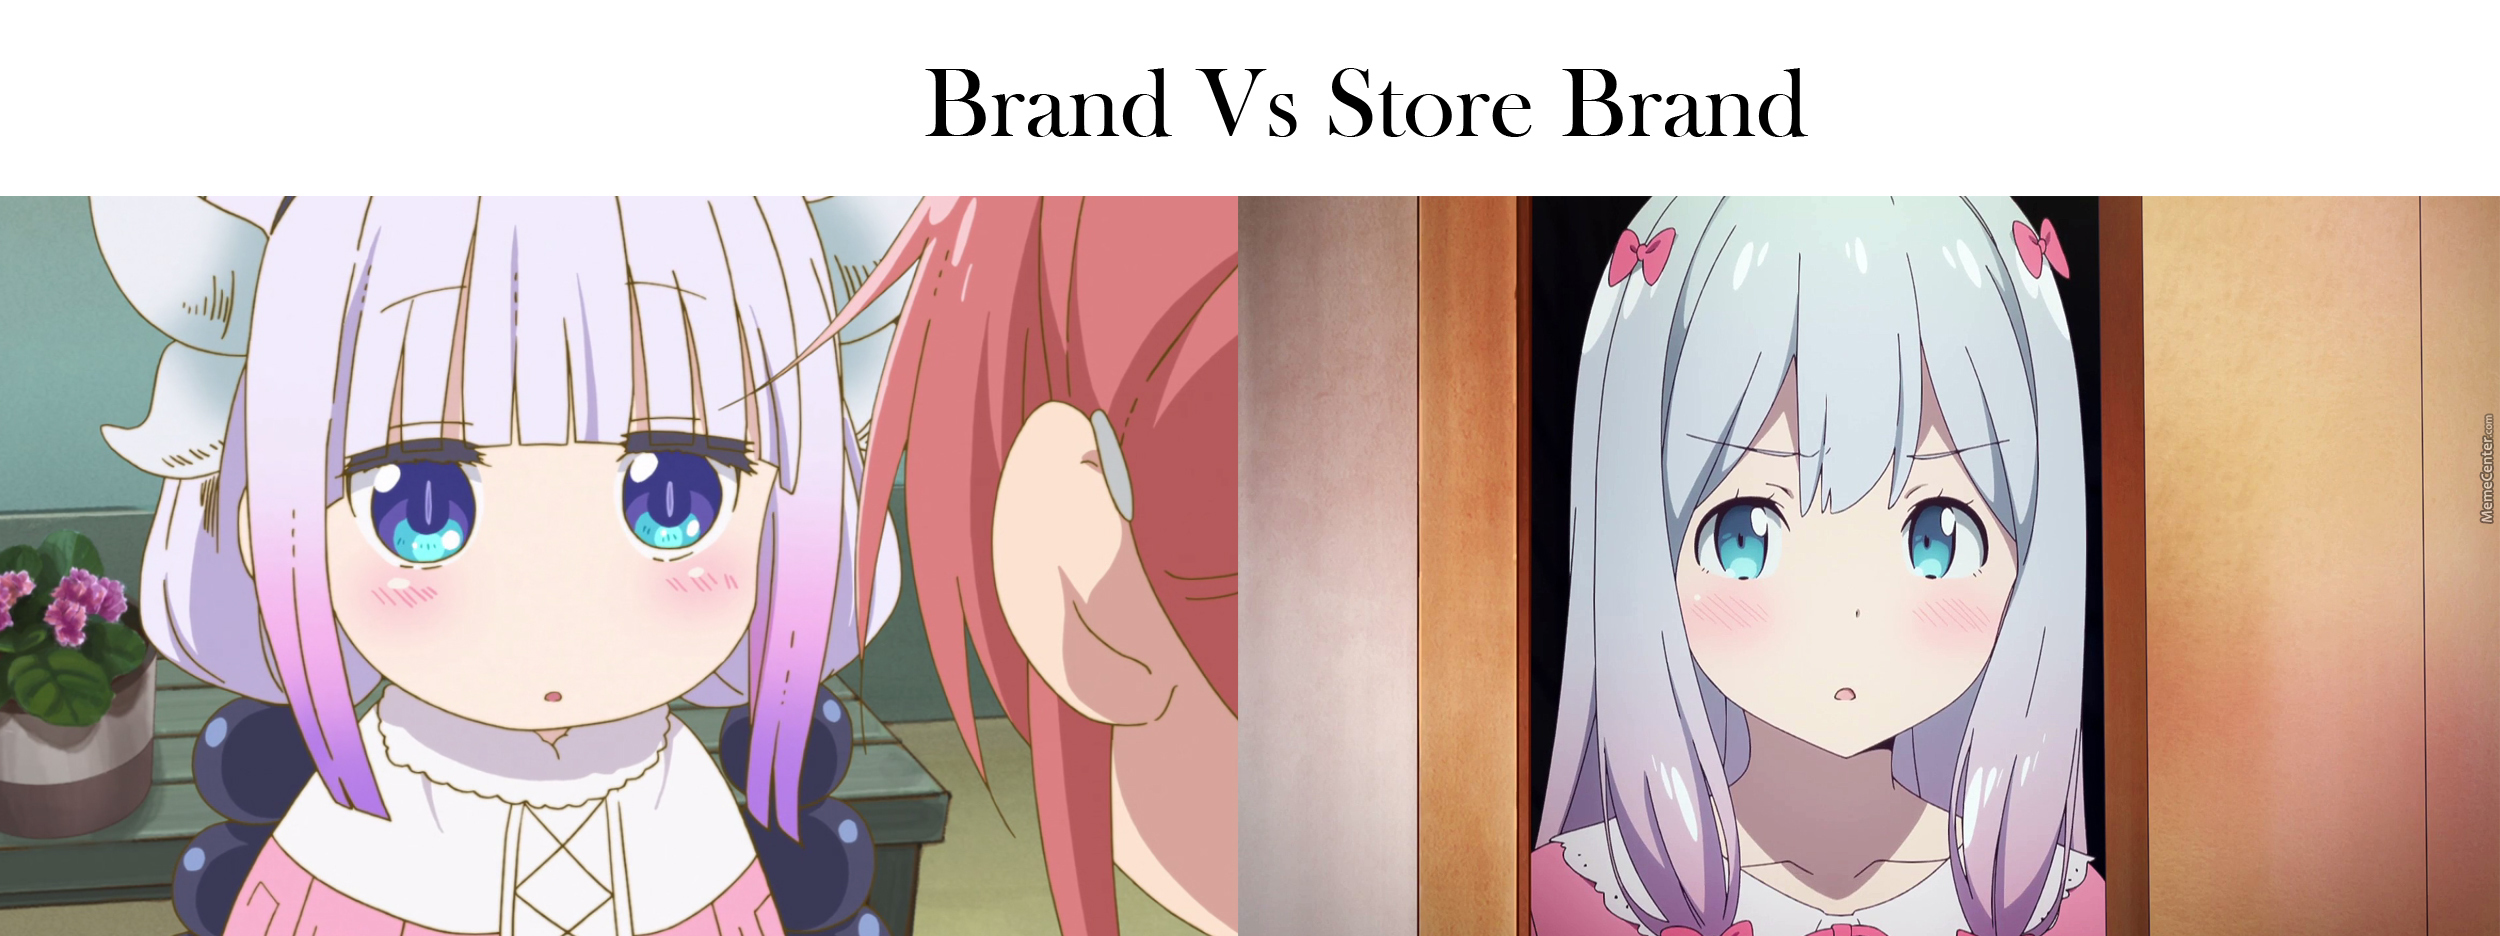 Either One Will Brand You A Pedophile